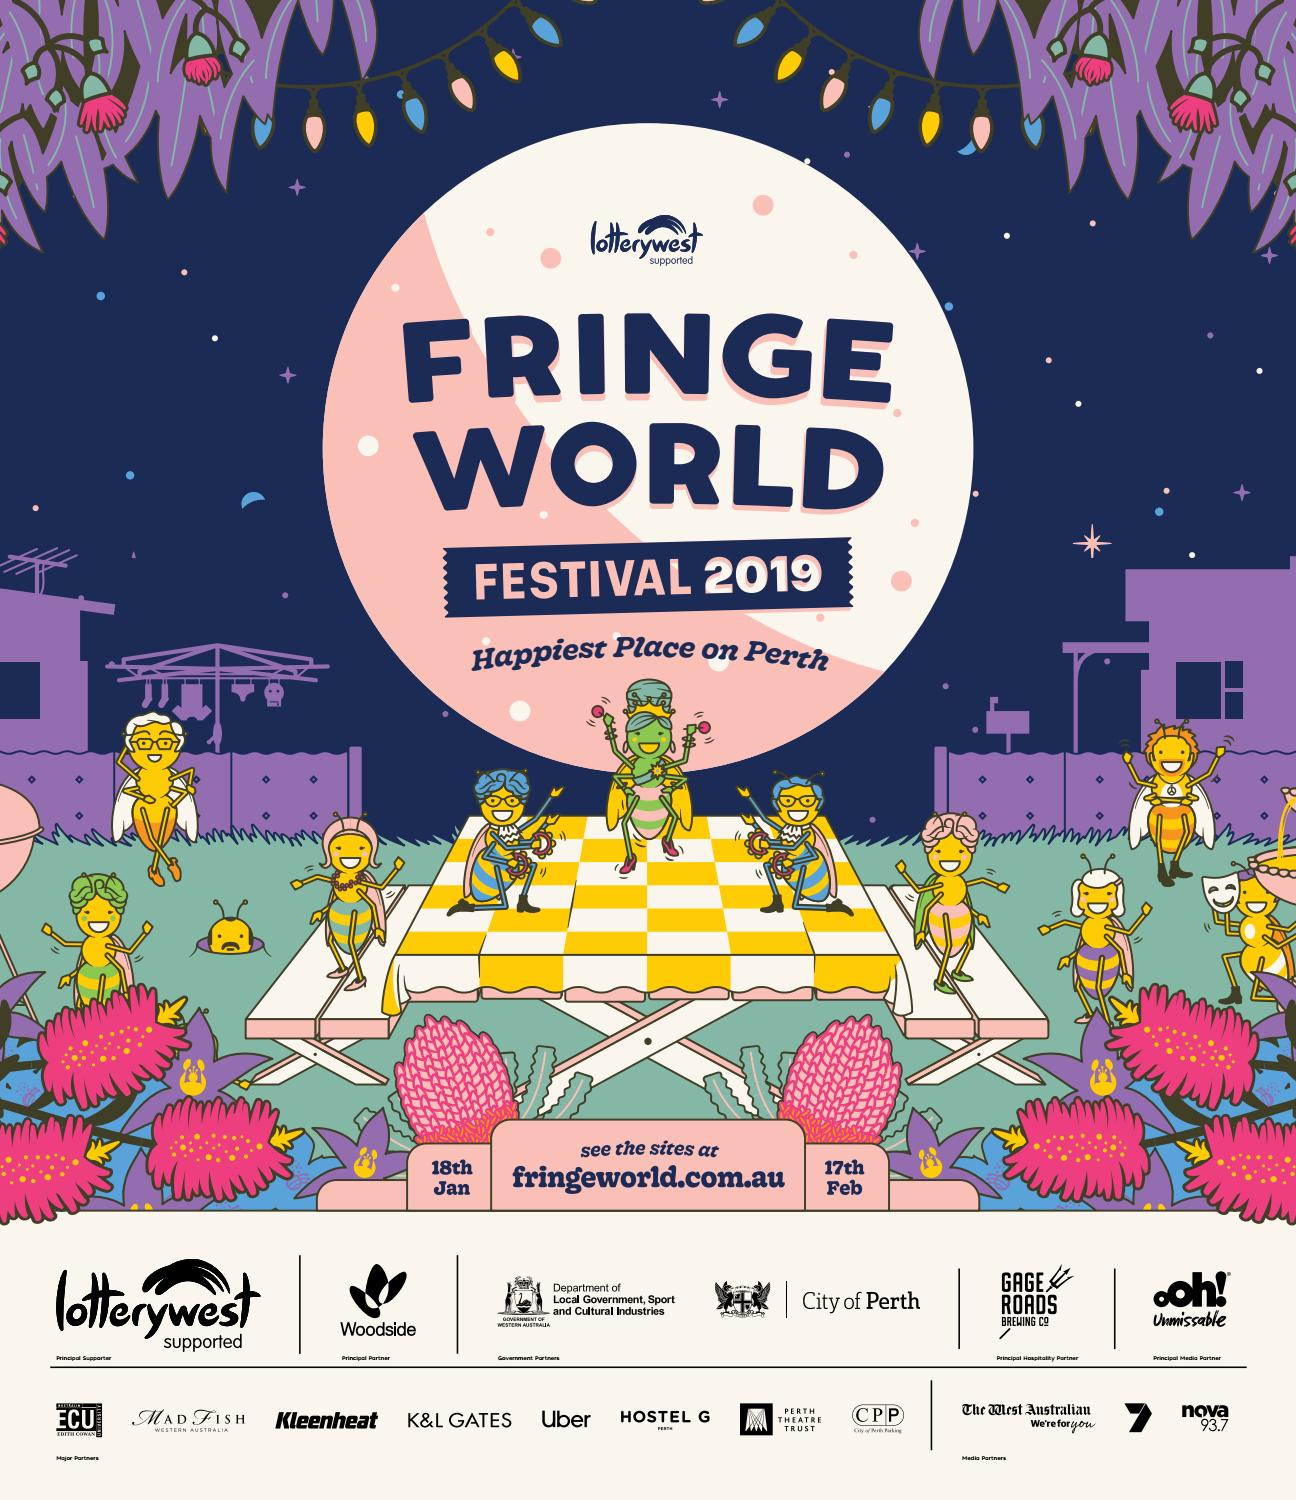 FRINGE WORLD 2019 Festival Guide by Fringe World Festival